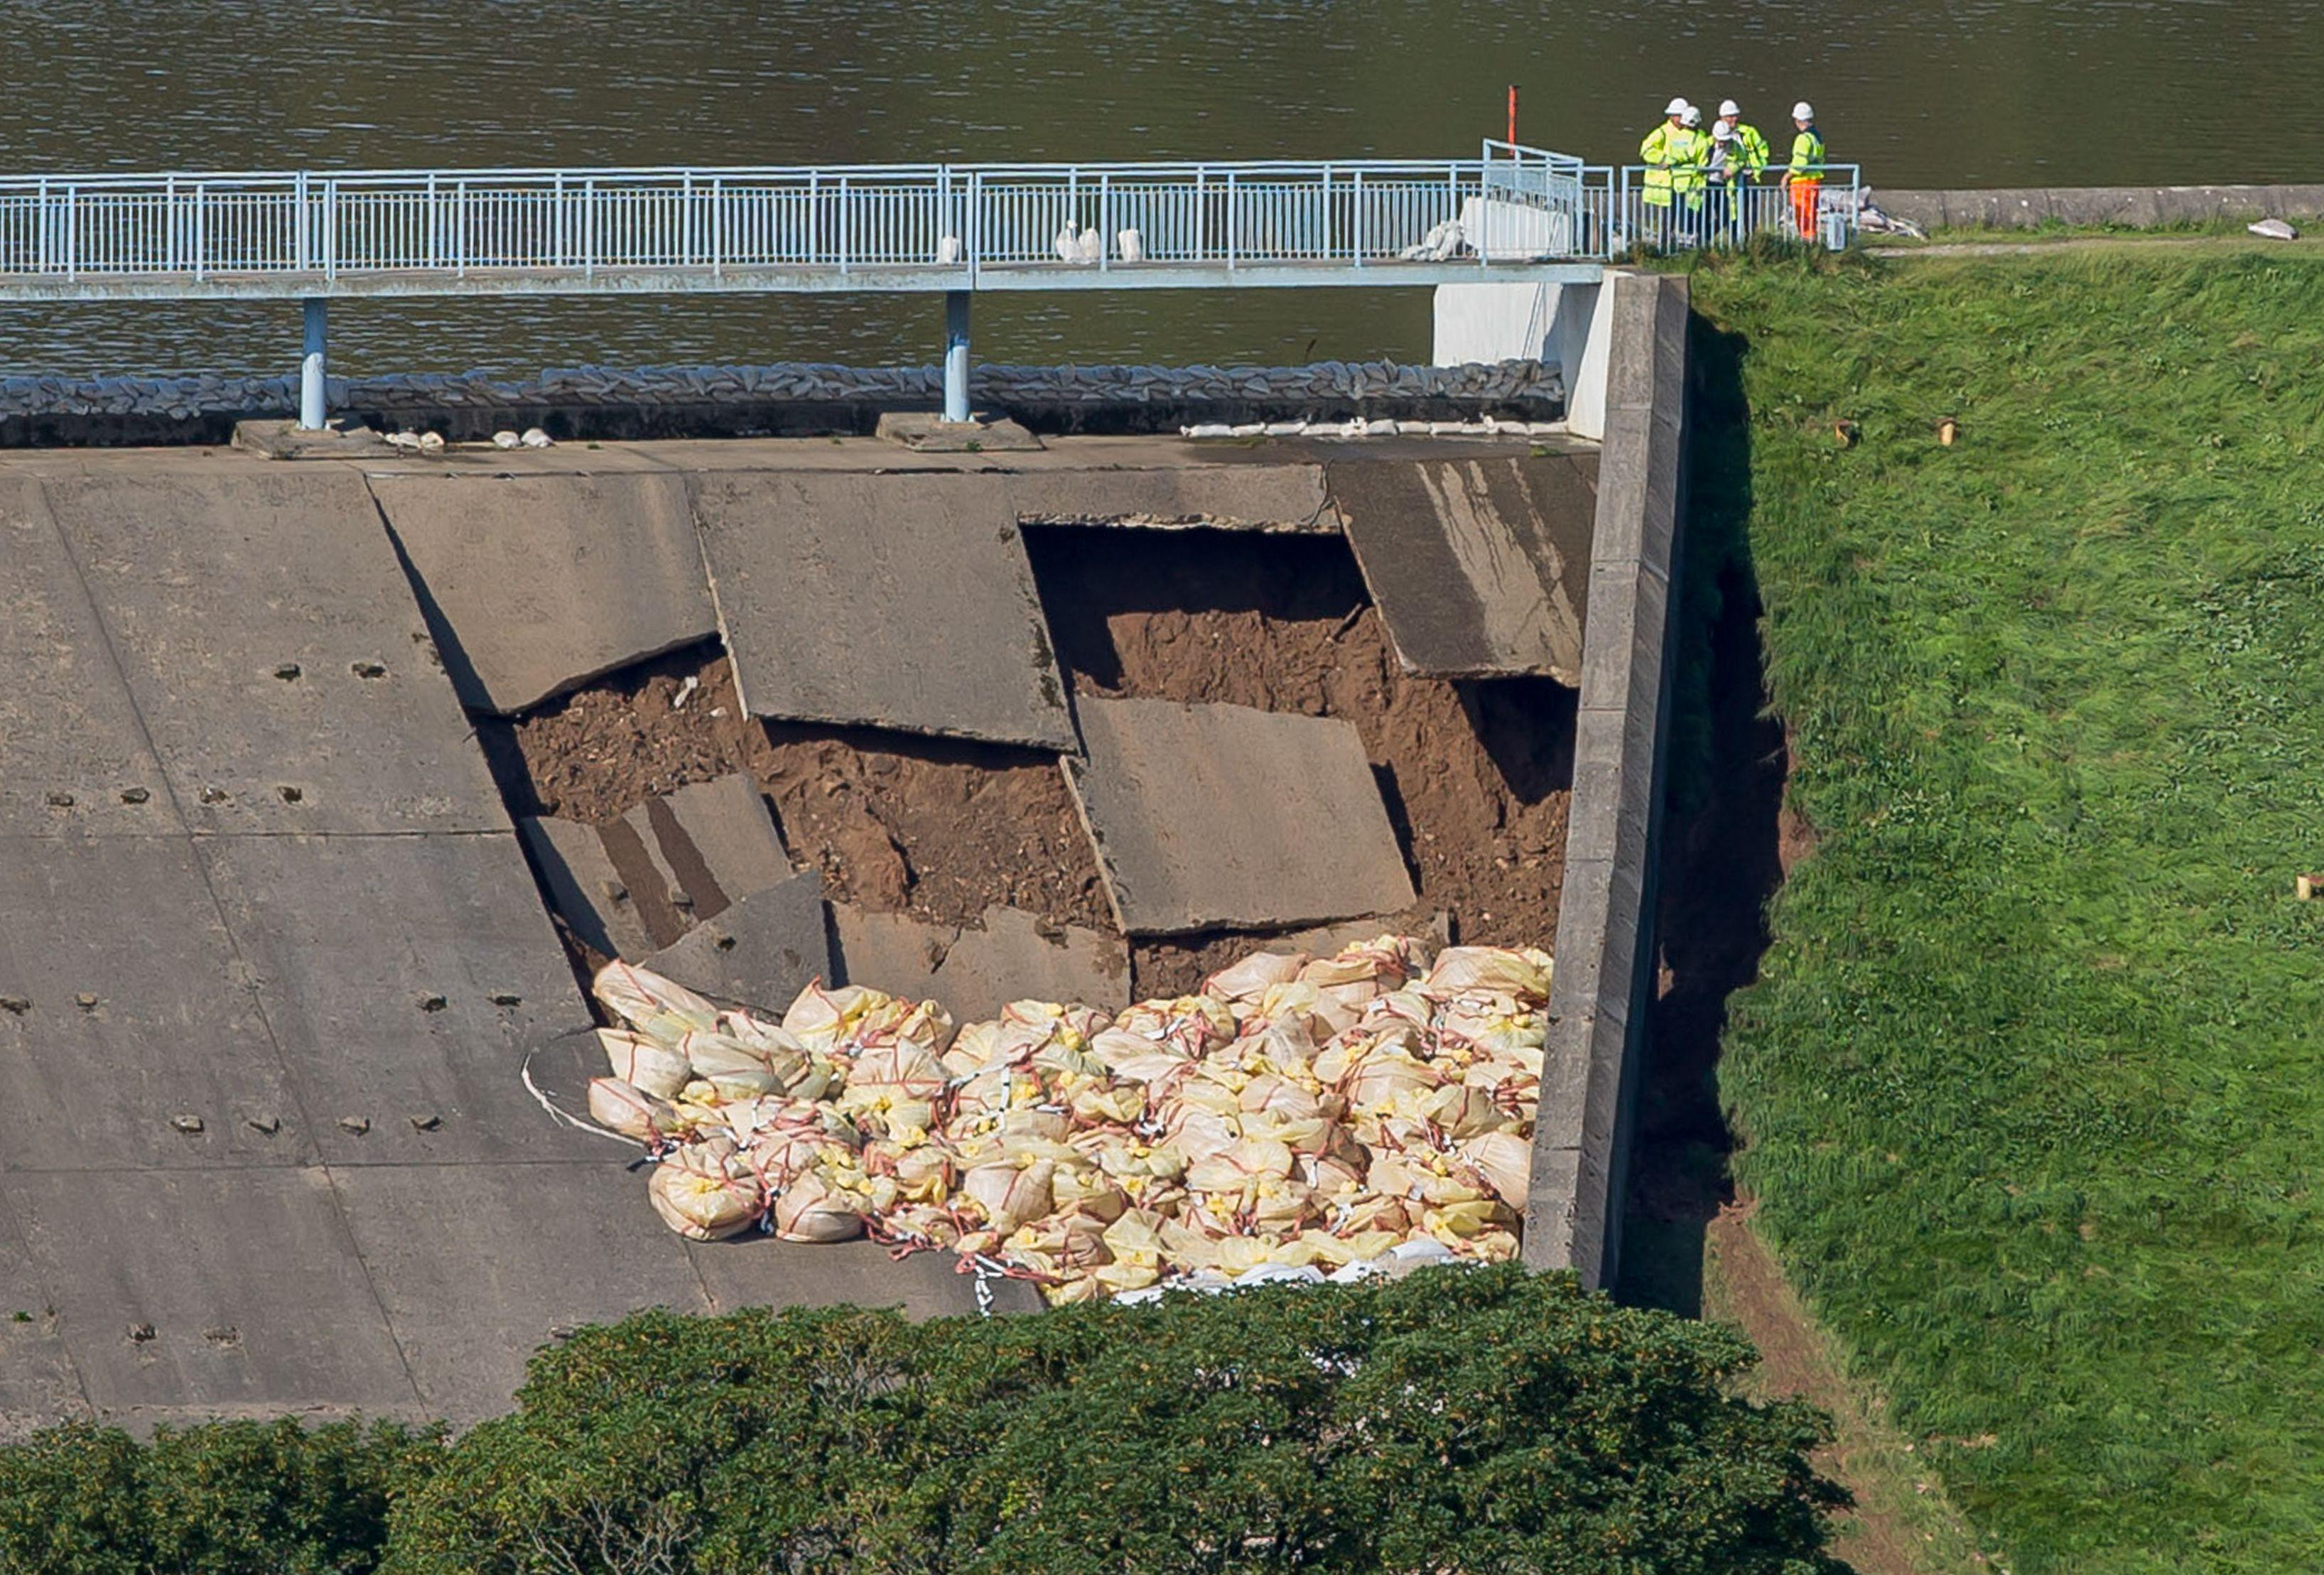 A picture shows bags of aggregate deployed by emergency services to reinforce a damaged section of the spillway of the Toddbrook Reservoir dam above the town of Whaley Bridge in northern England on August 2, 2019. - Emergency services continued work to repair a damaged dam they fear could collapse as hundreds of evacuated residents of the northern town of Whaley Bridge spent the night away from home. (Photo by Roland HARRISON / AFP) (Photo credit should read ROLAND HARRISON/AFP/Getty Images)